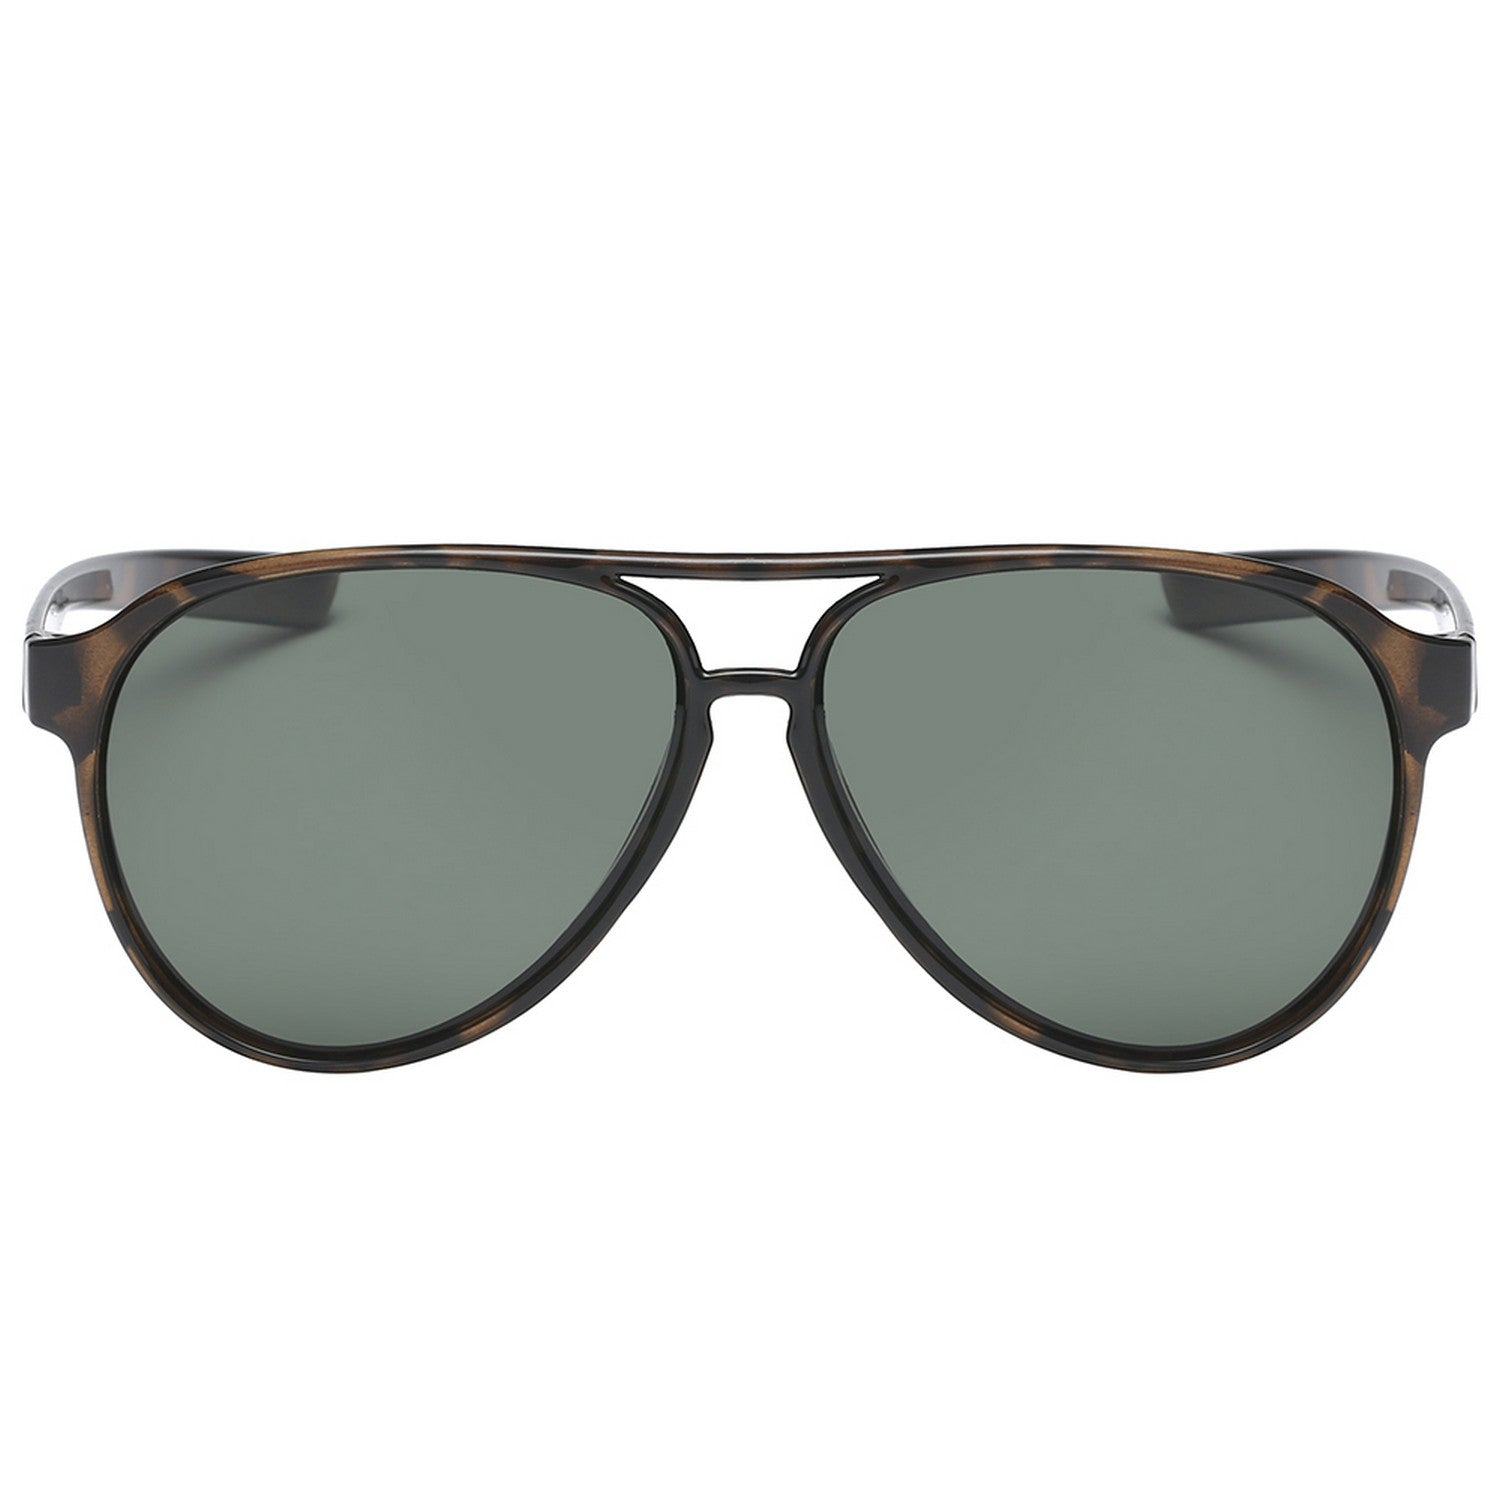 Polarspex Polarized Classic Ultar Lightweight Aviator Pilot Sunglasses with Honey Tortoise Frames and Polarized Olive Lenses for Men and Women